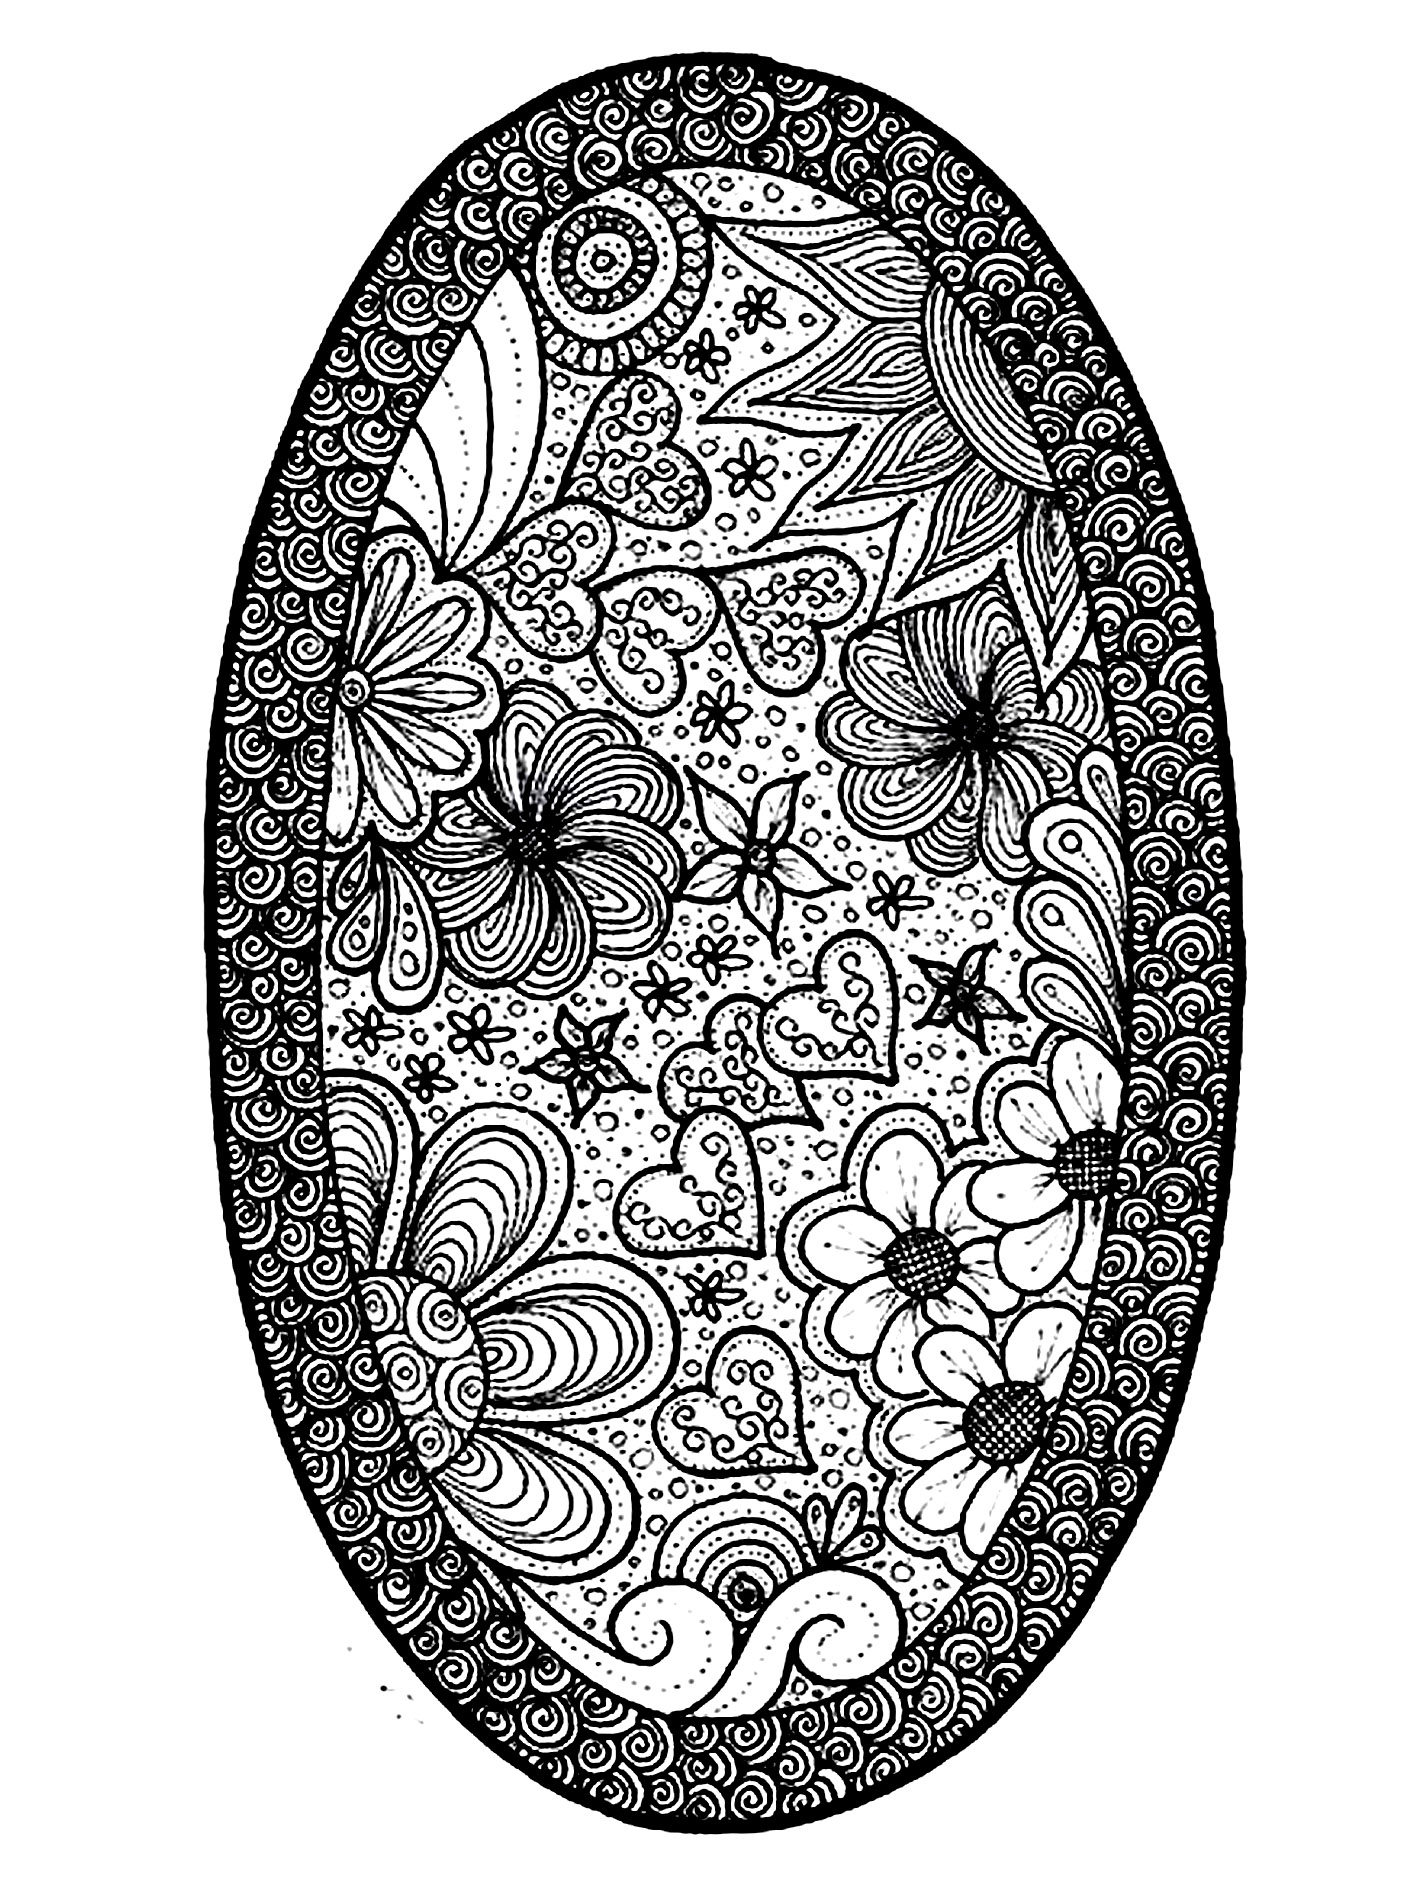 Flowers, hearts and plant elements in an oval shape